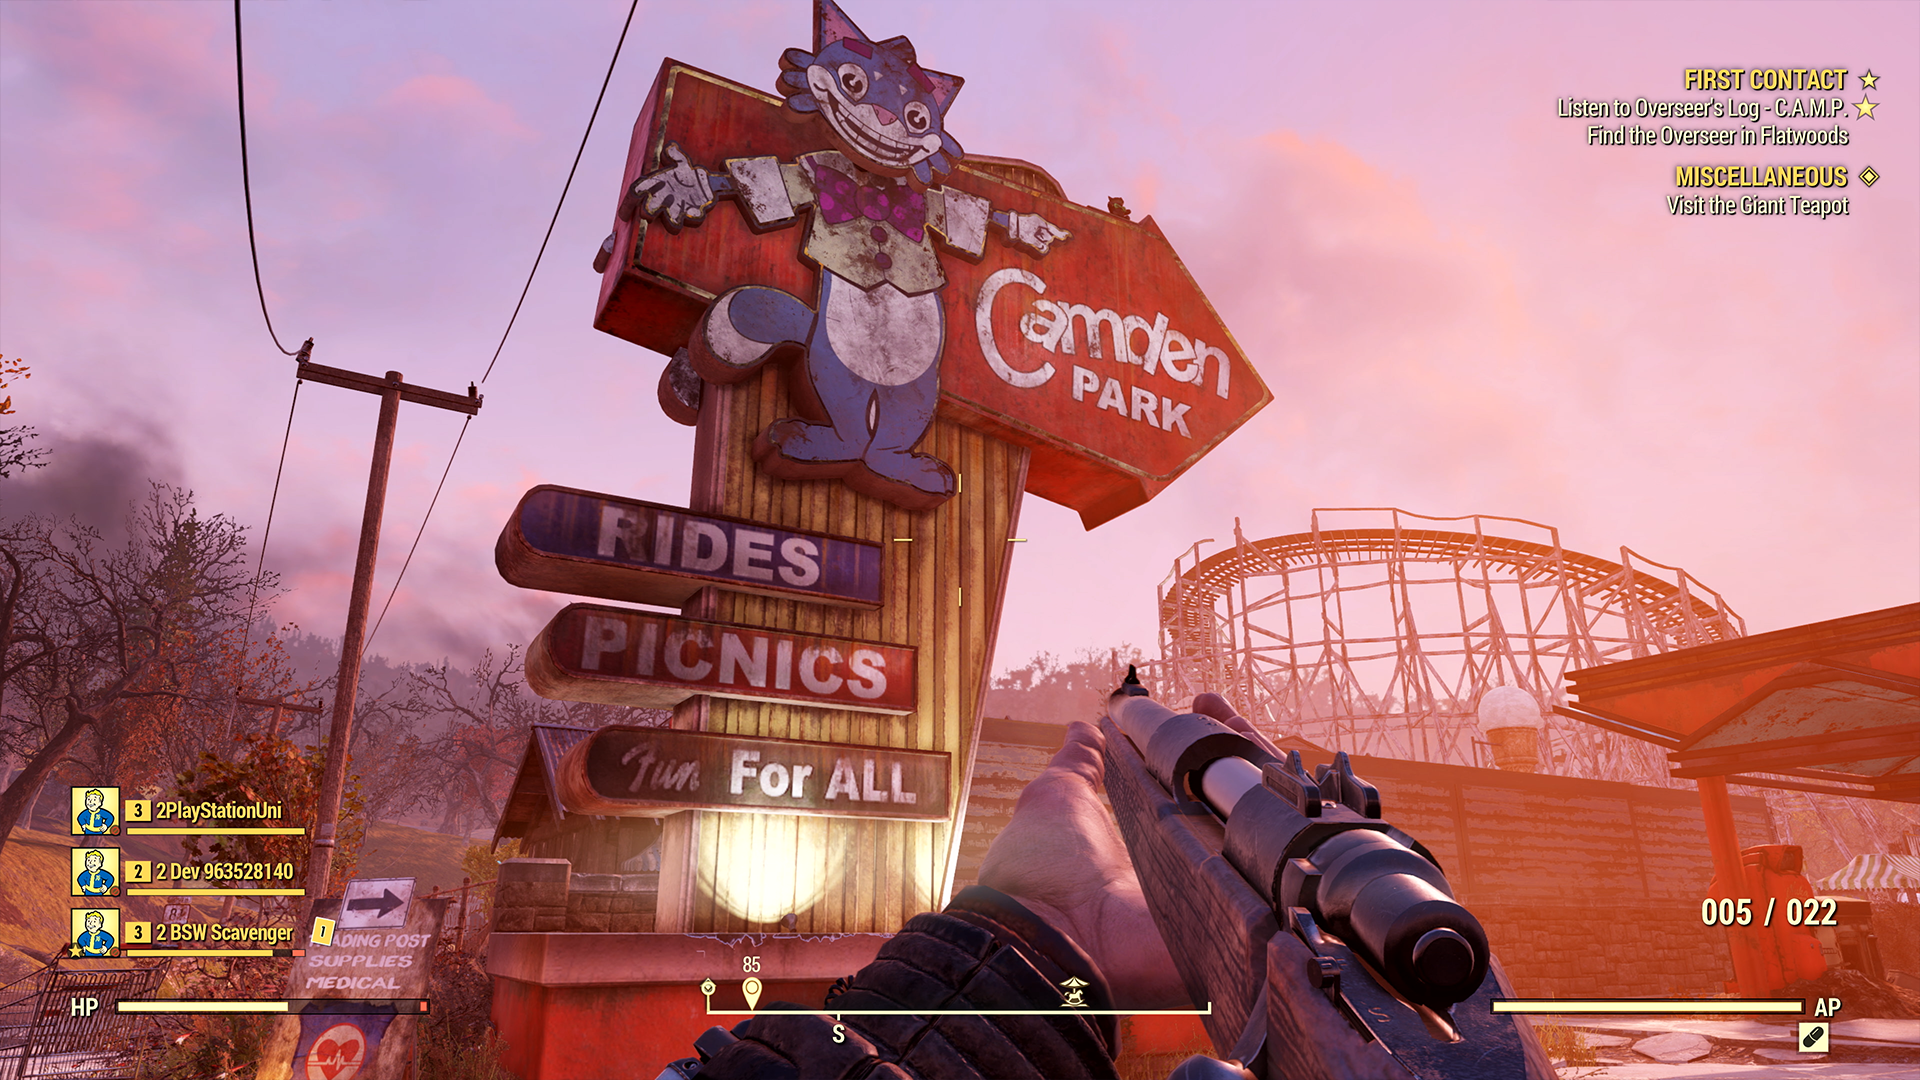 Why is Fallout 76 Set in the Foothills of West Virginia?